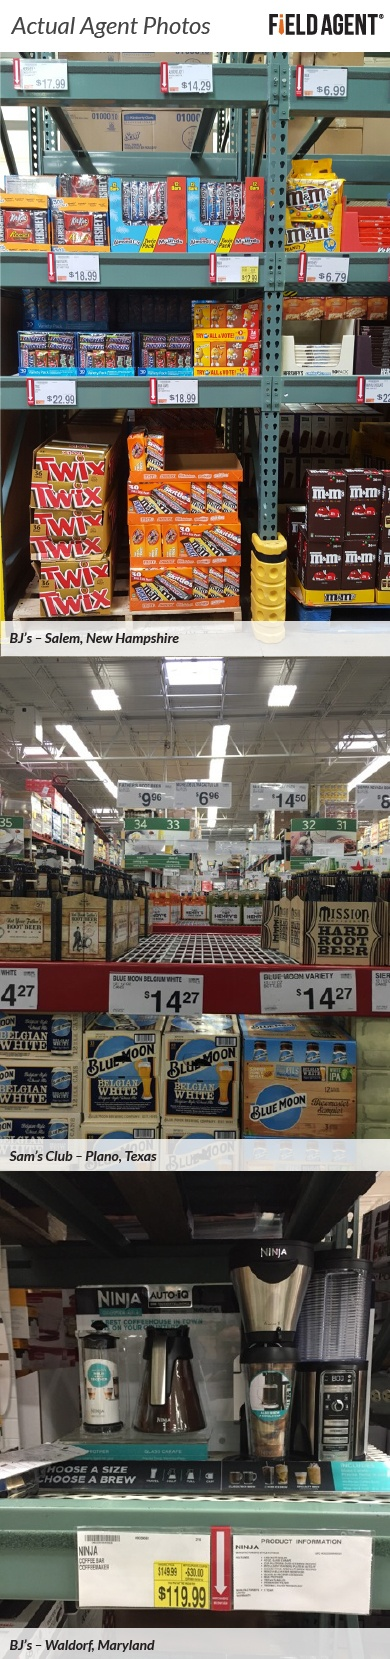 Actual Agent Photos inside Wholesale Clubs